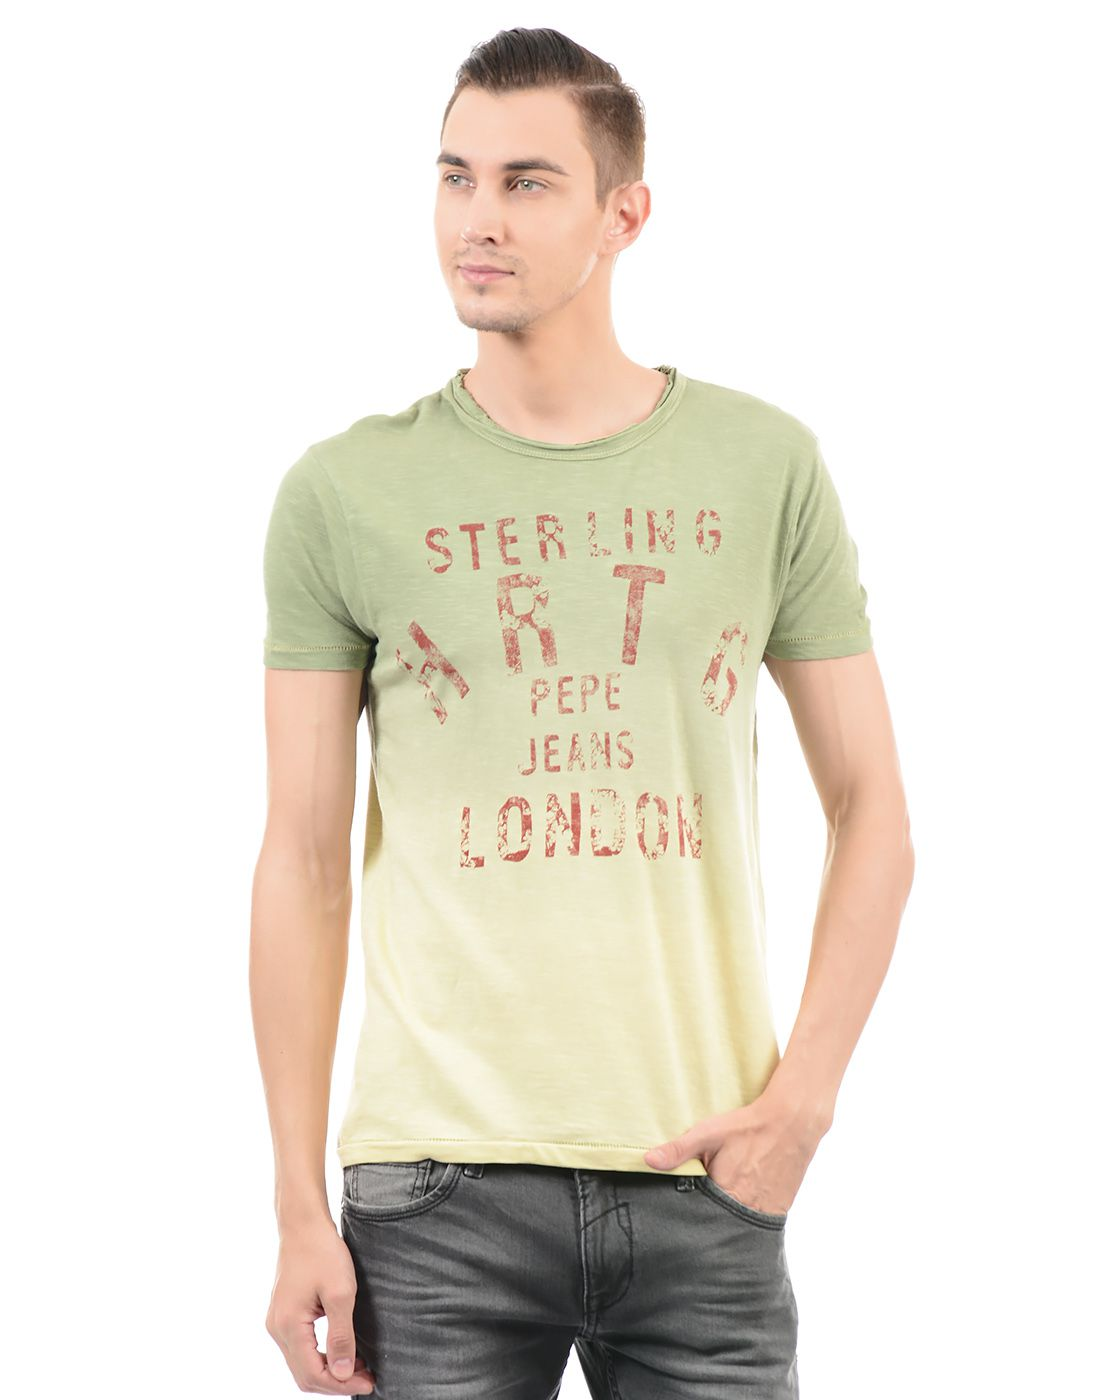 Pepe Jeans Green Round T-Shirt